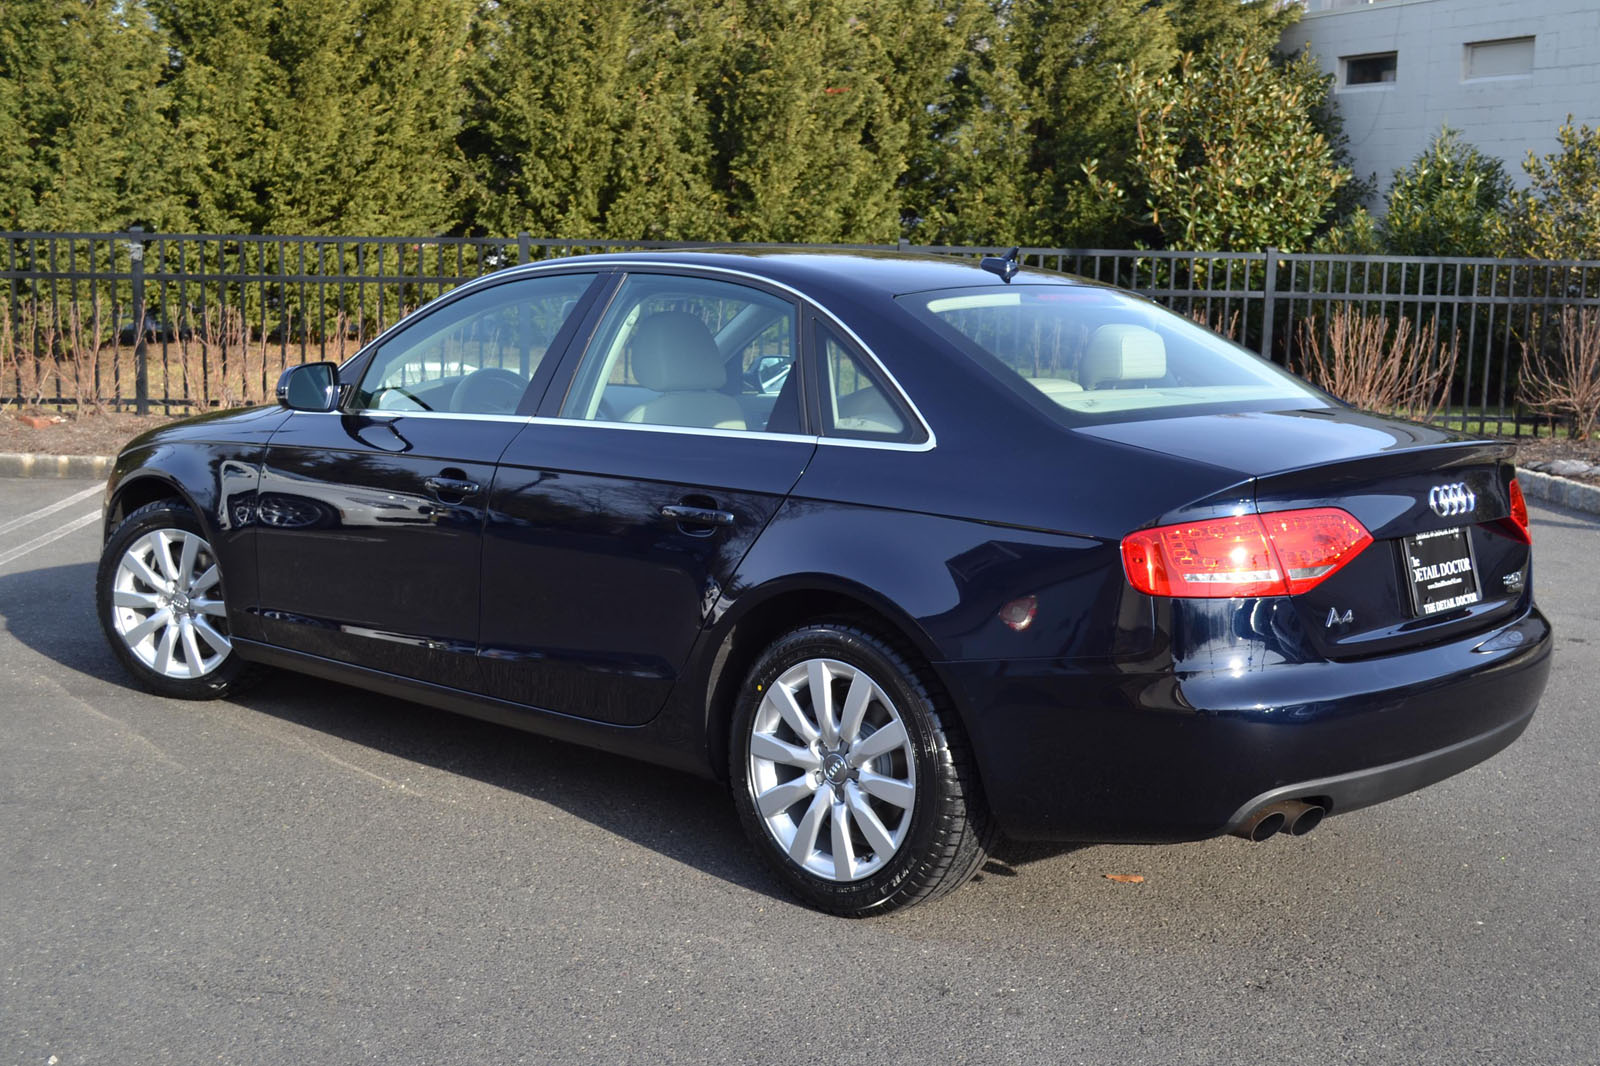 2011 audi a4 2 0t quattro premium plus pre owned. Black Bedroom Furniture Sets. Home Design Ideas